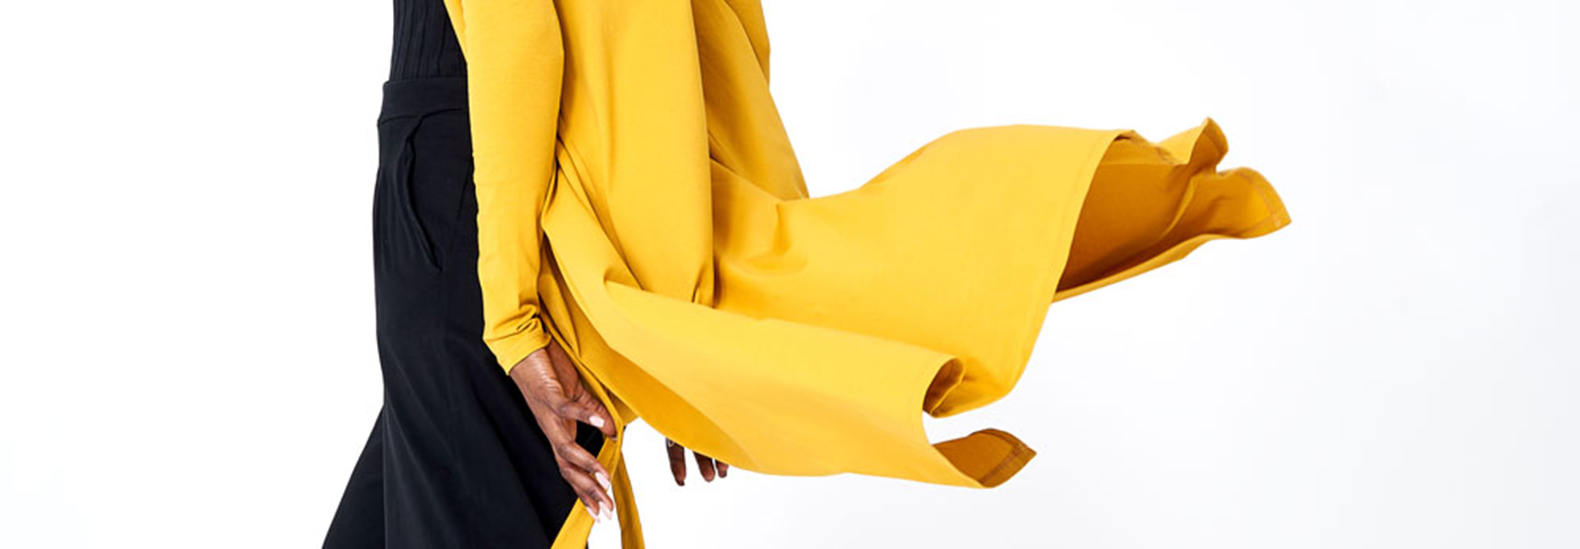 Gaia & Dubos debuts a sustainable fall clothing collection